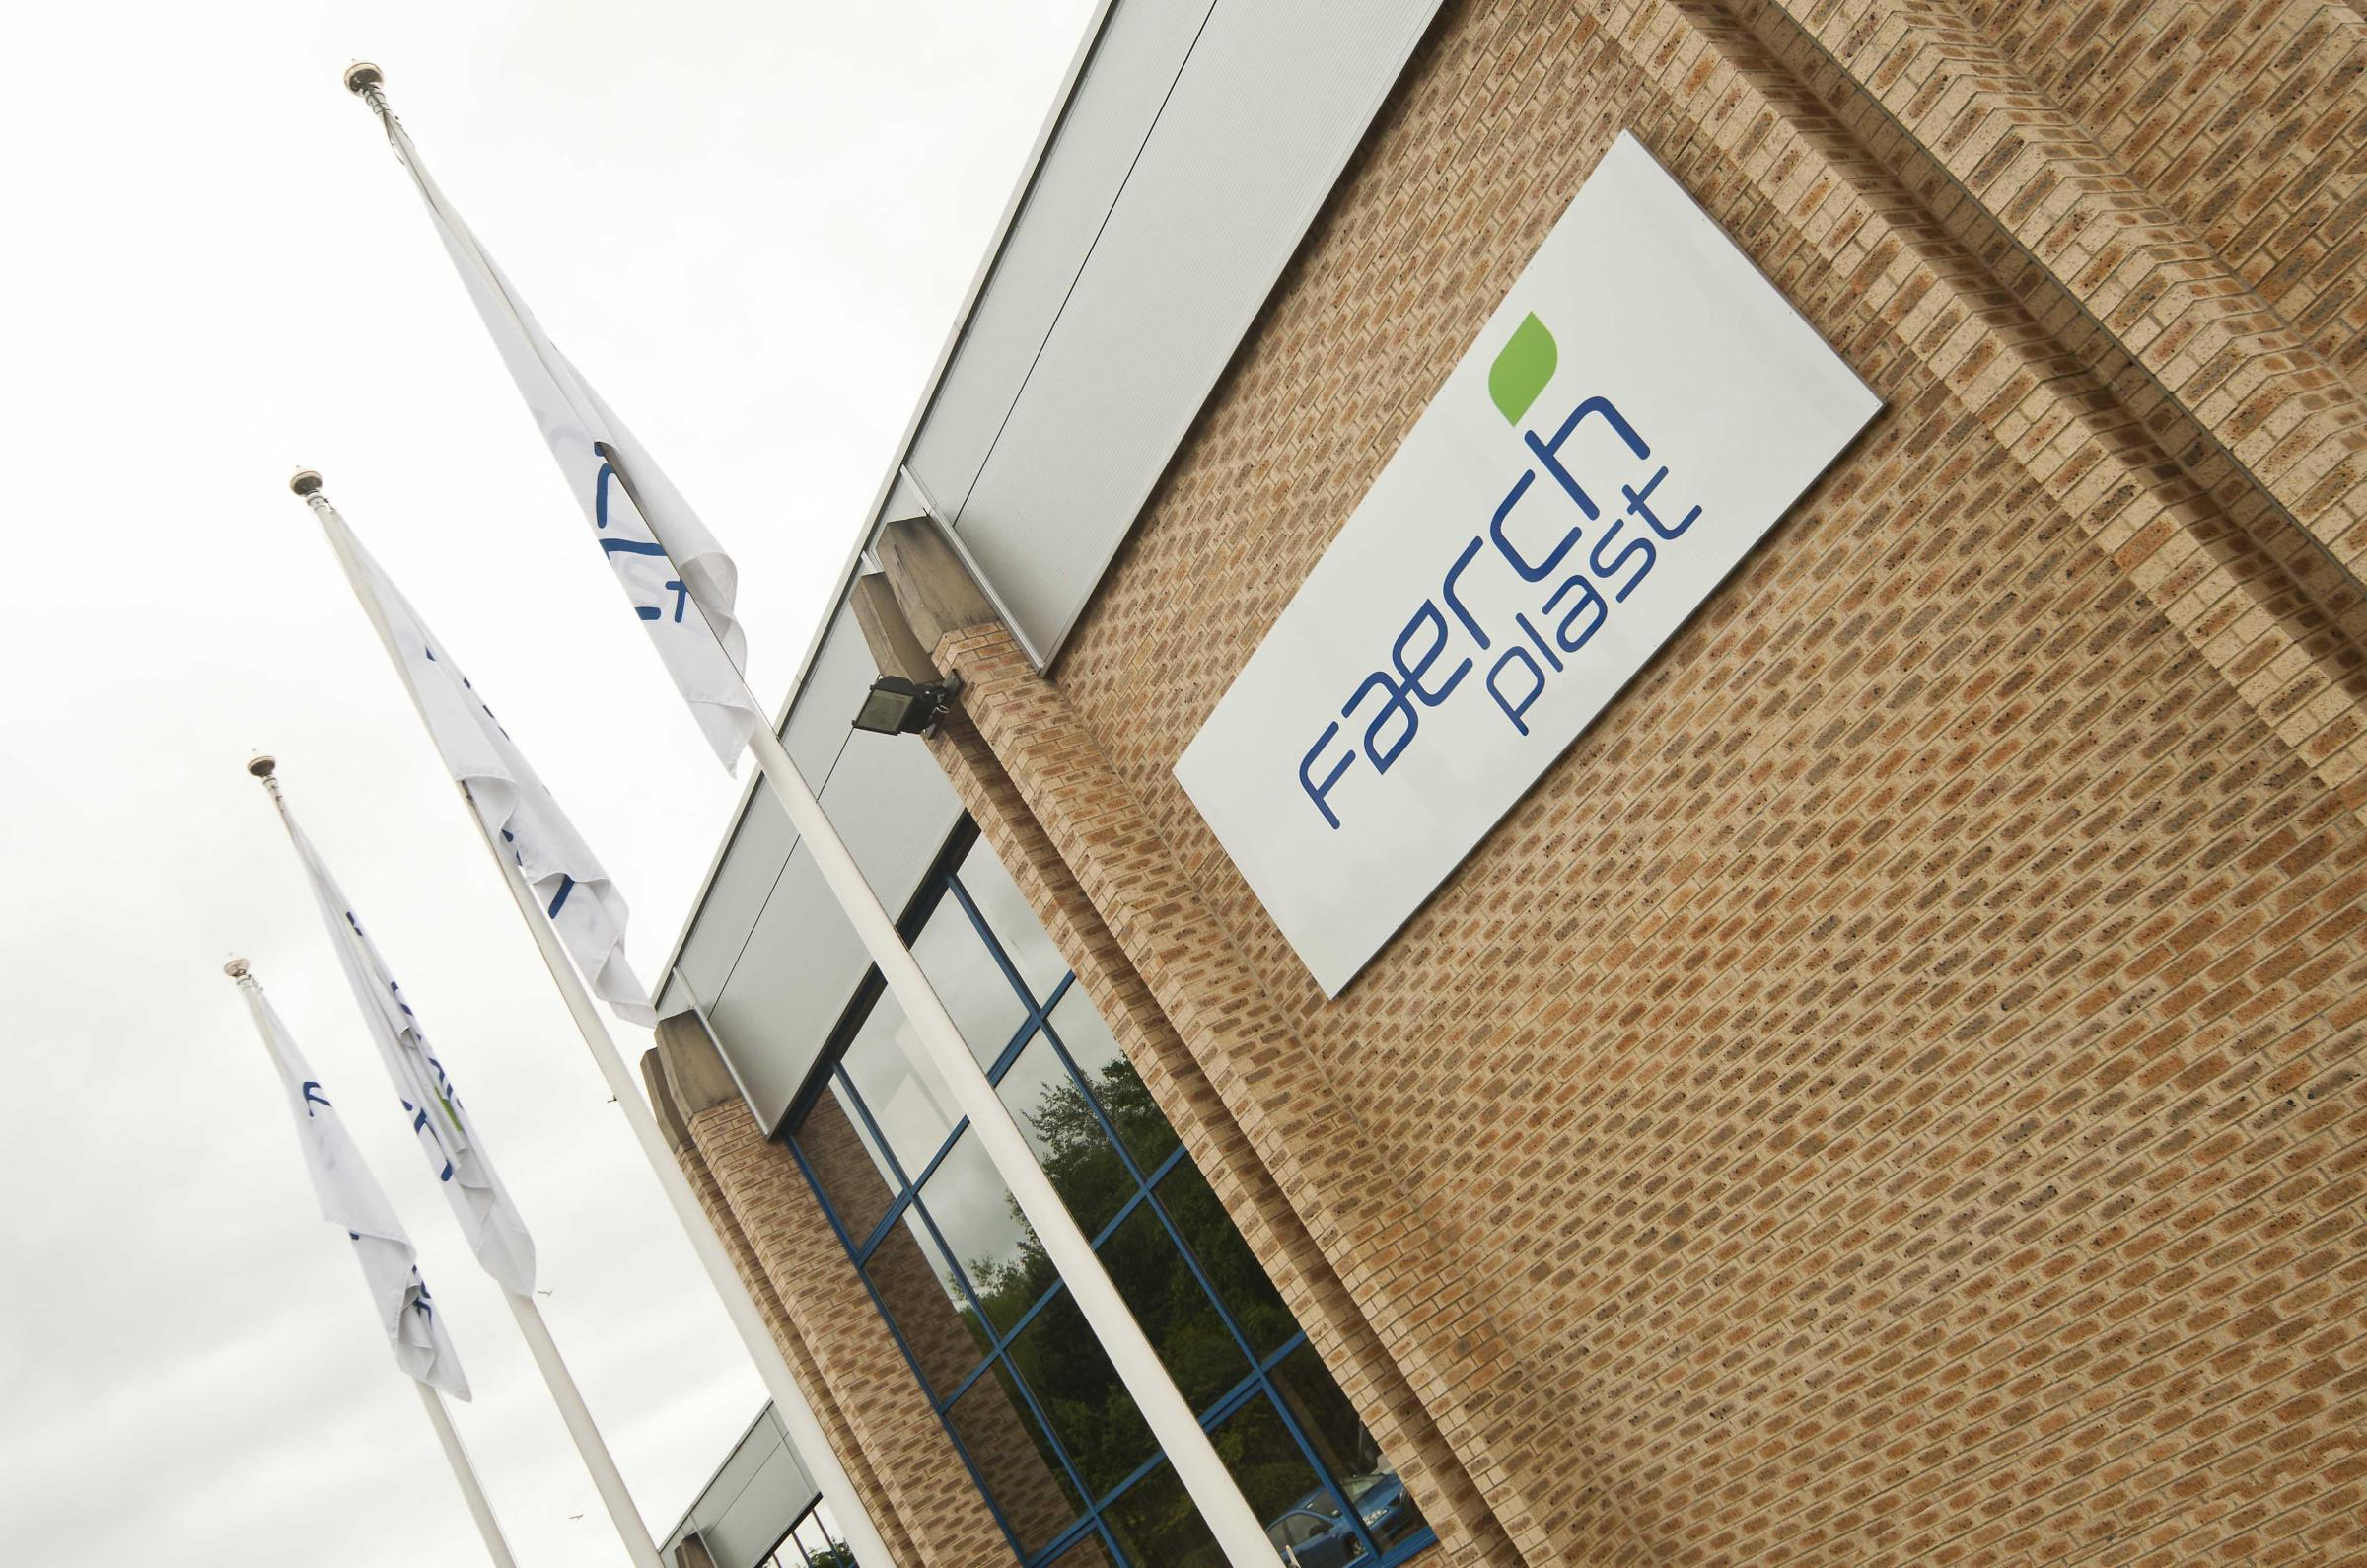 Packaging Firm Reiterates Jobs Vow The Northern Echo